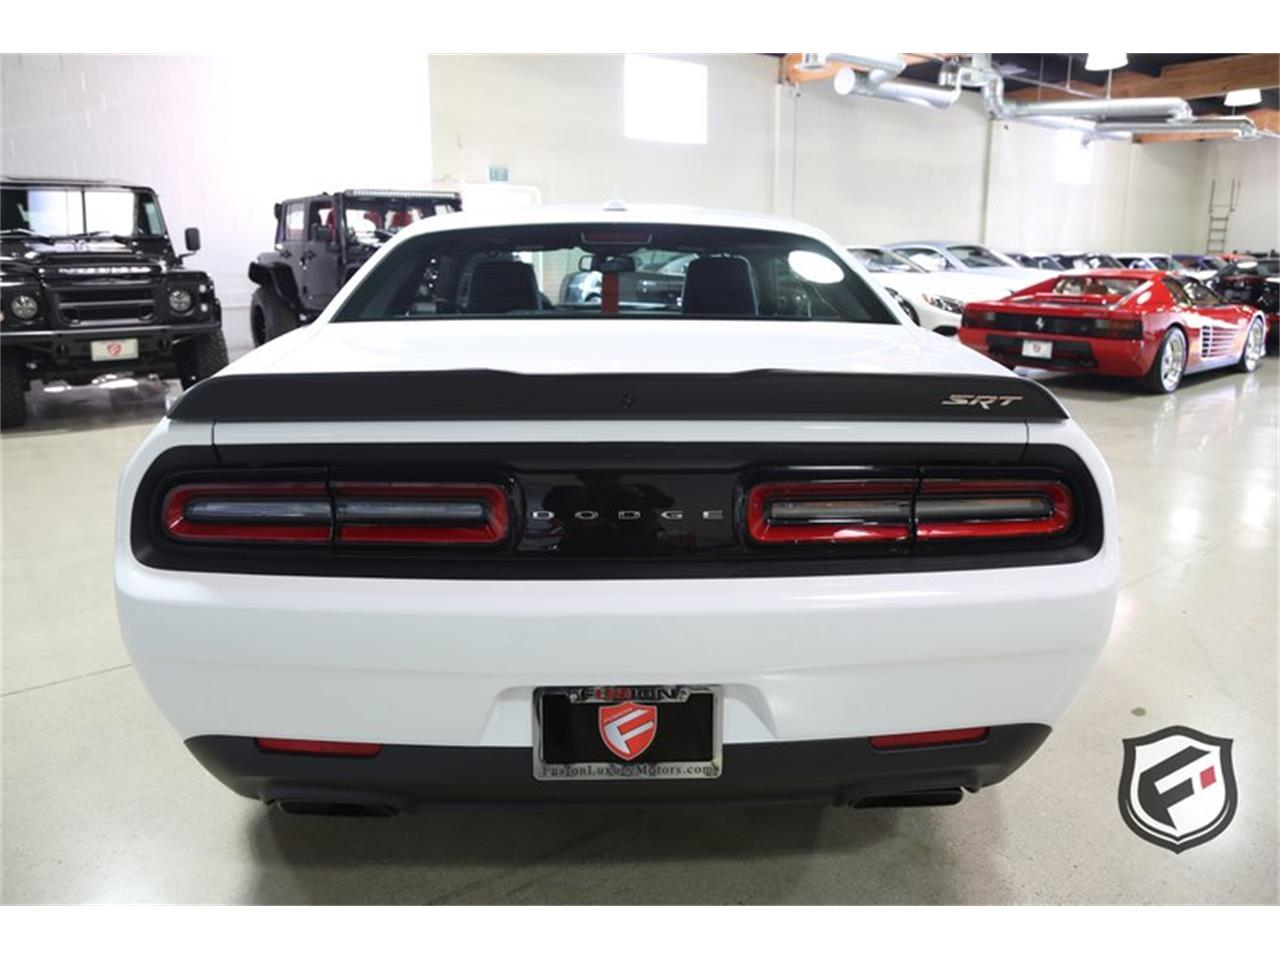 2018 Dodge Challenger for sale in Chatsworth, CA – photo 4